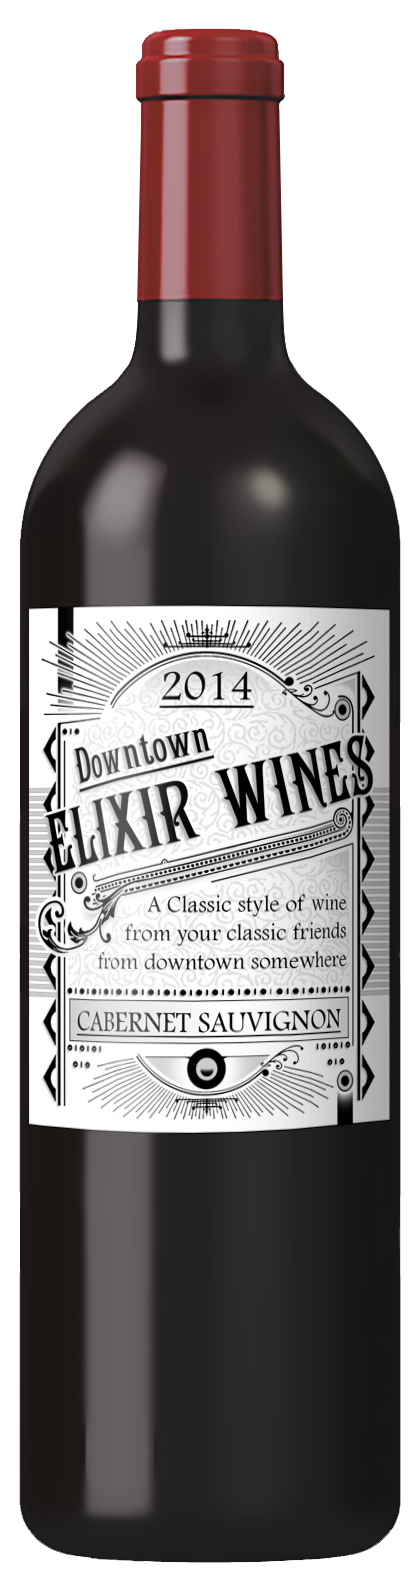 Custom wine labels for your homemade wine